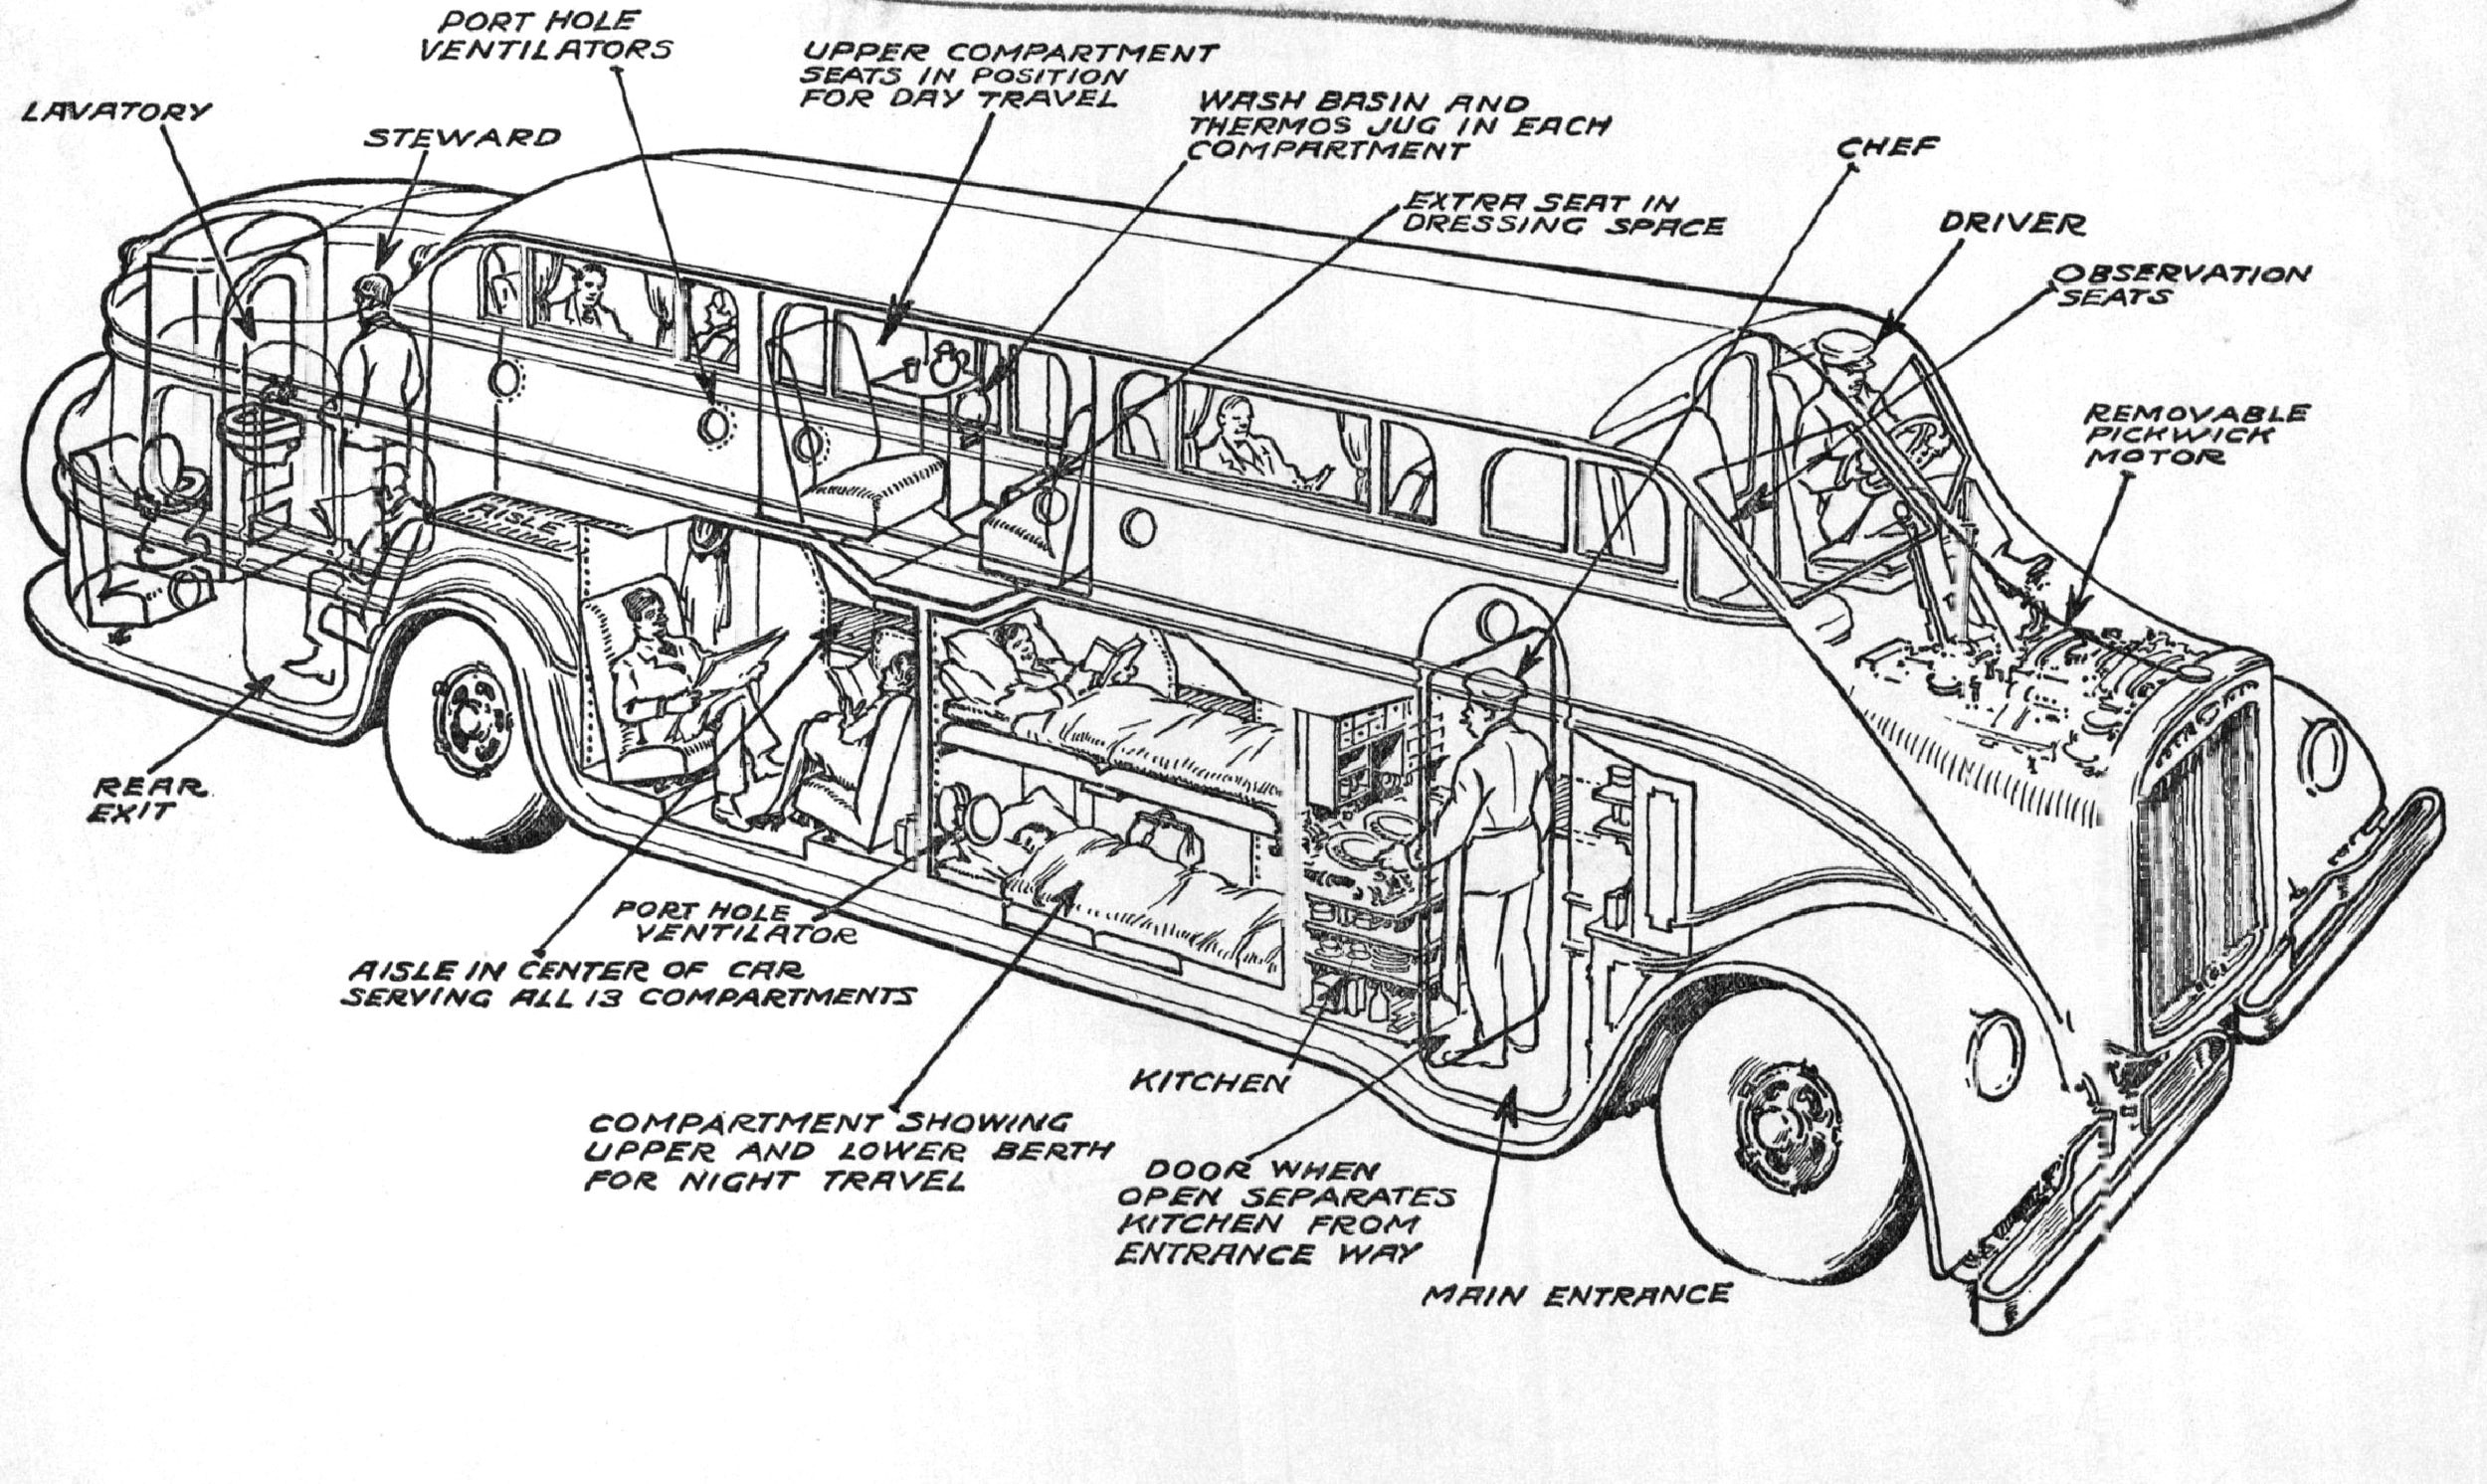 bus engine diagram school bus engine diagram 1999 bluebird rh detoxicrecenze com School Bus Engine Pre-Trip Parts Bluebird Bus Engine Compartment